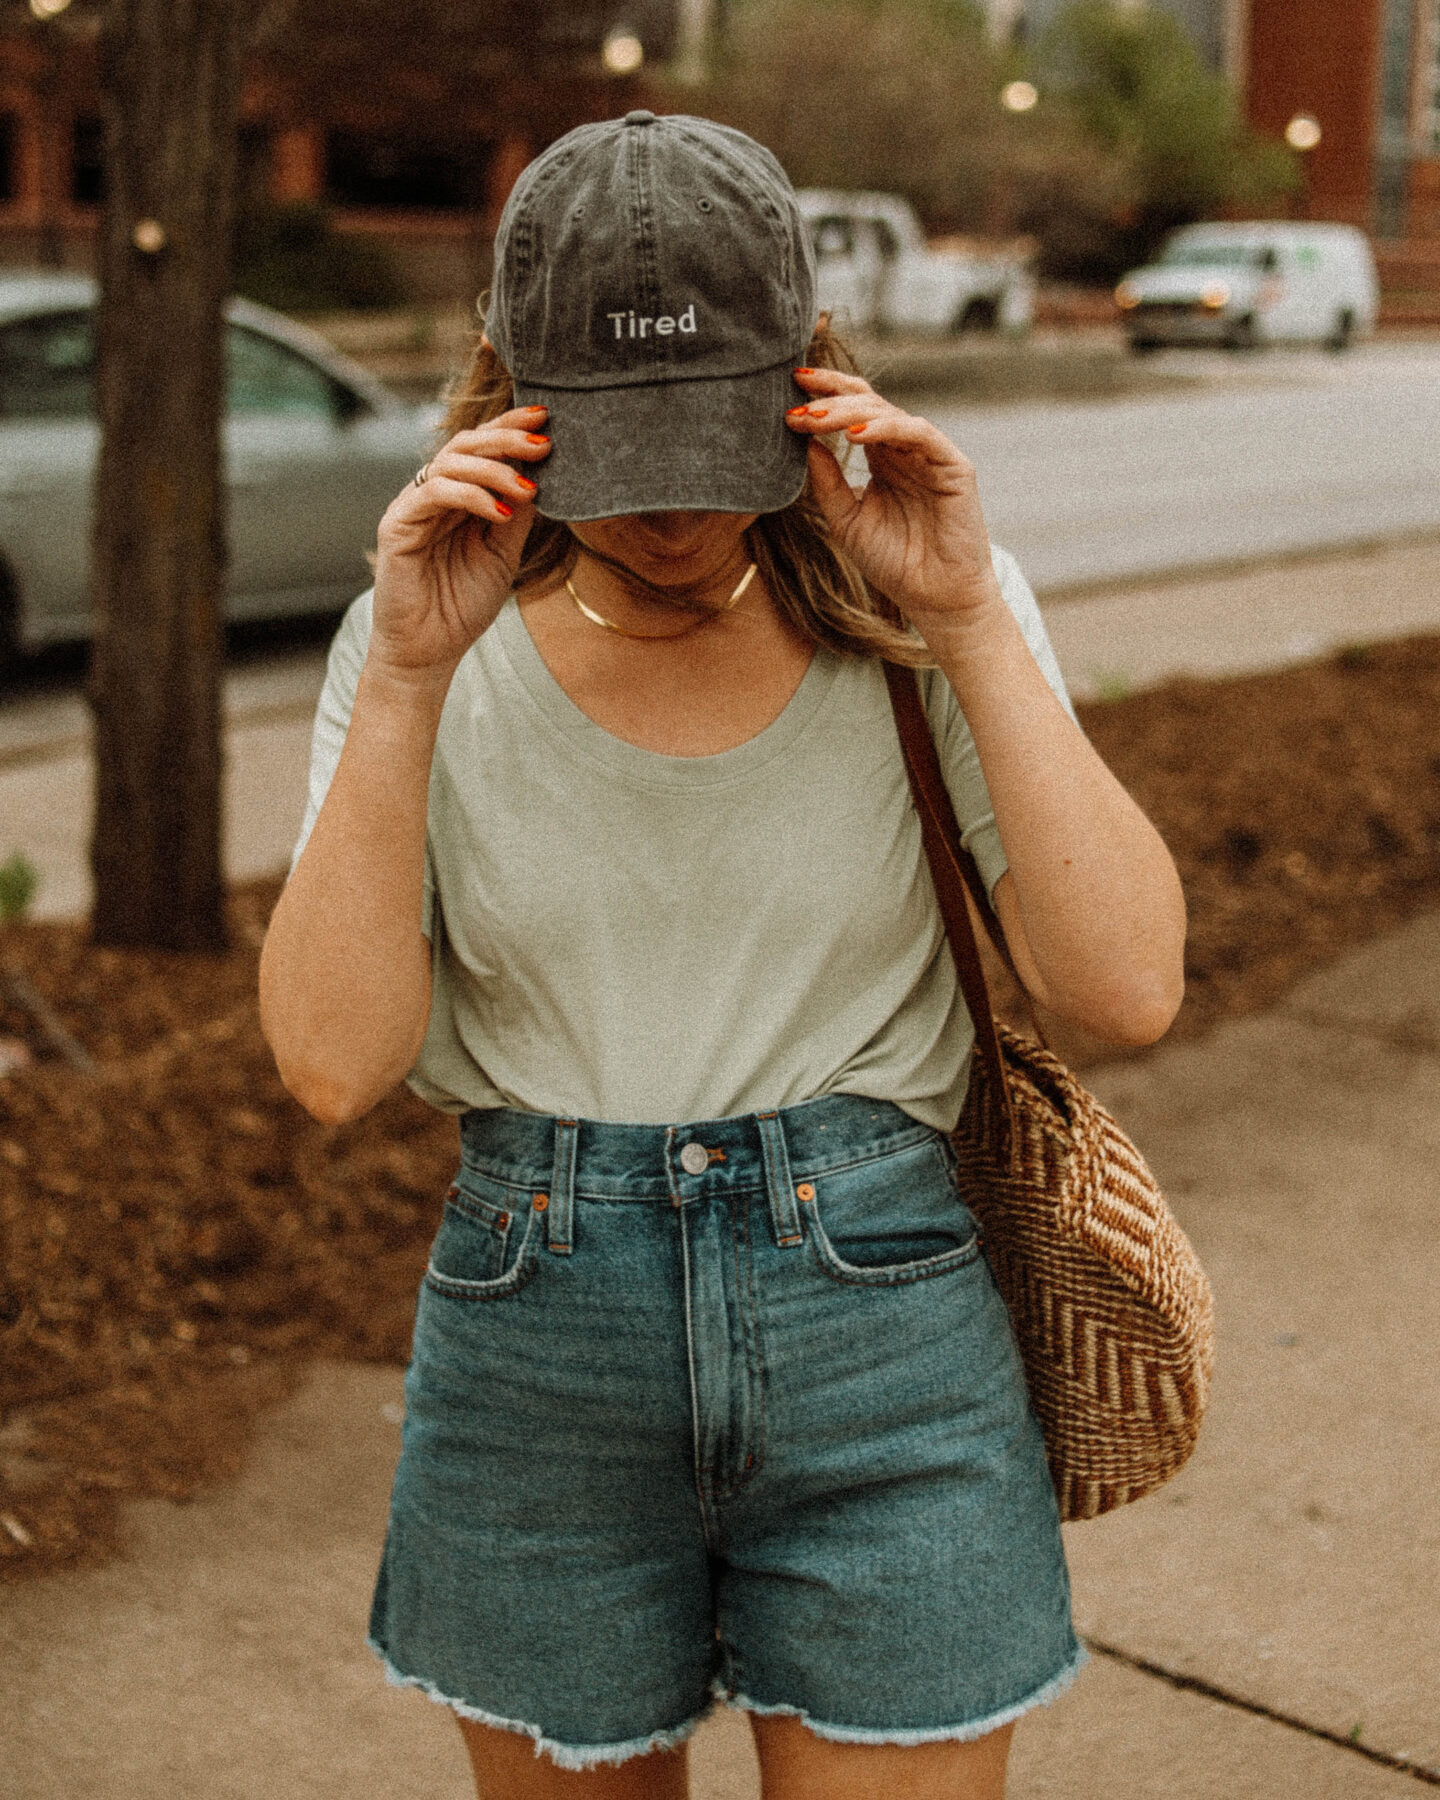 Denim Short Guide 2021 - Styles You'll Love for Years